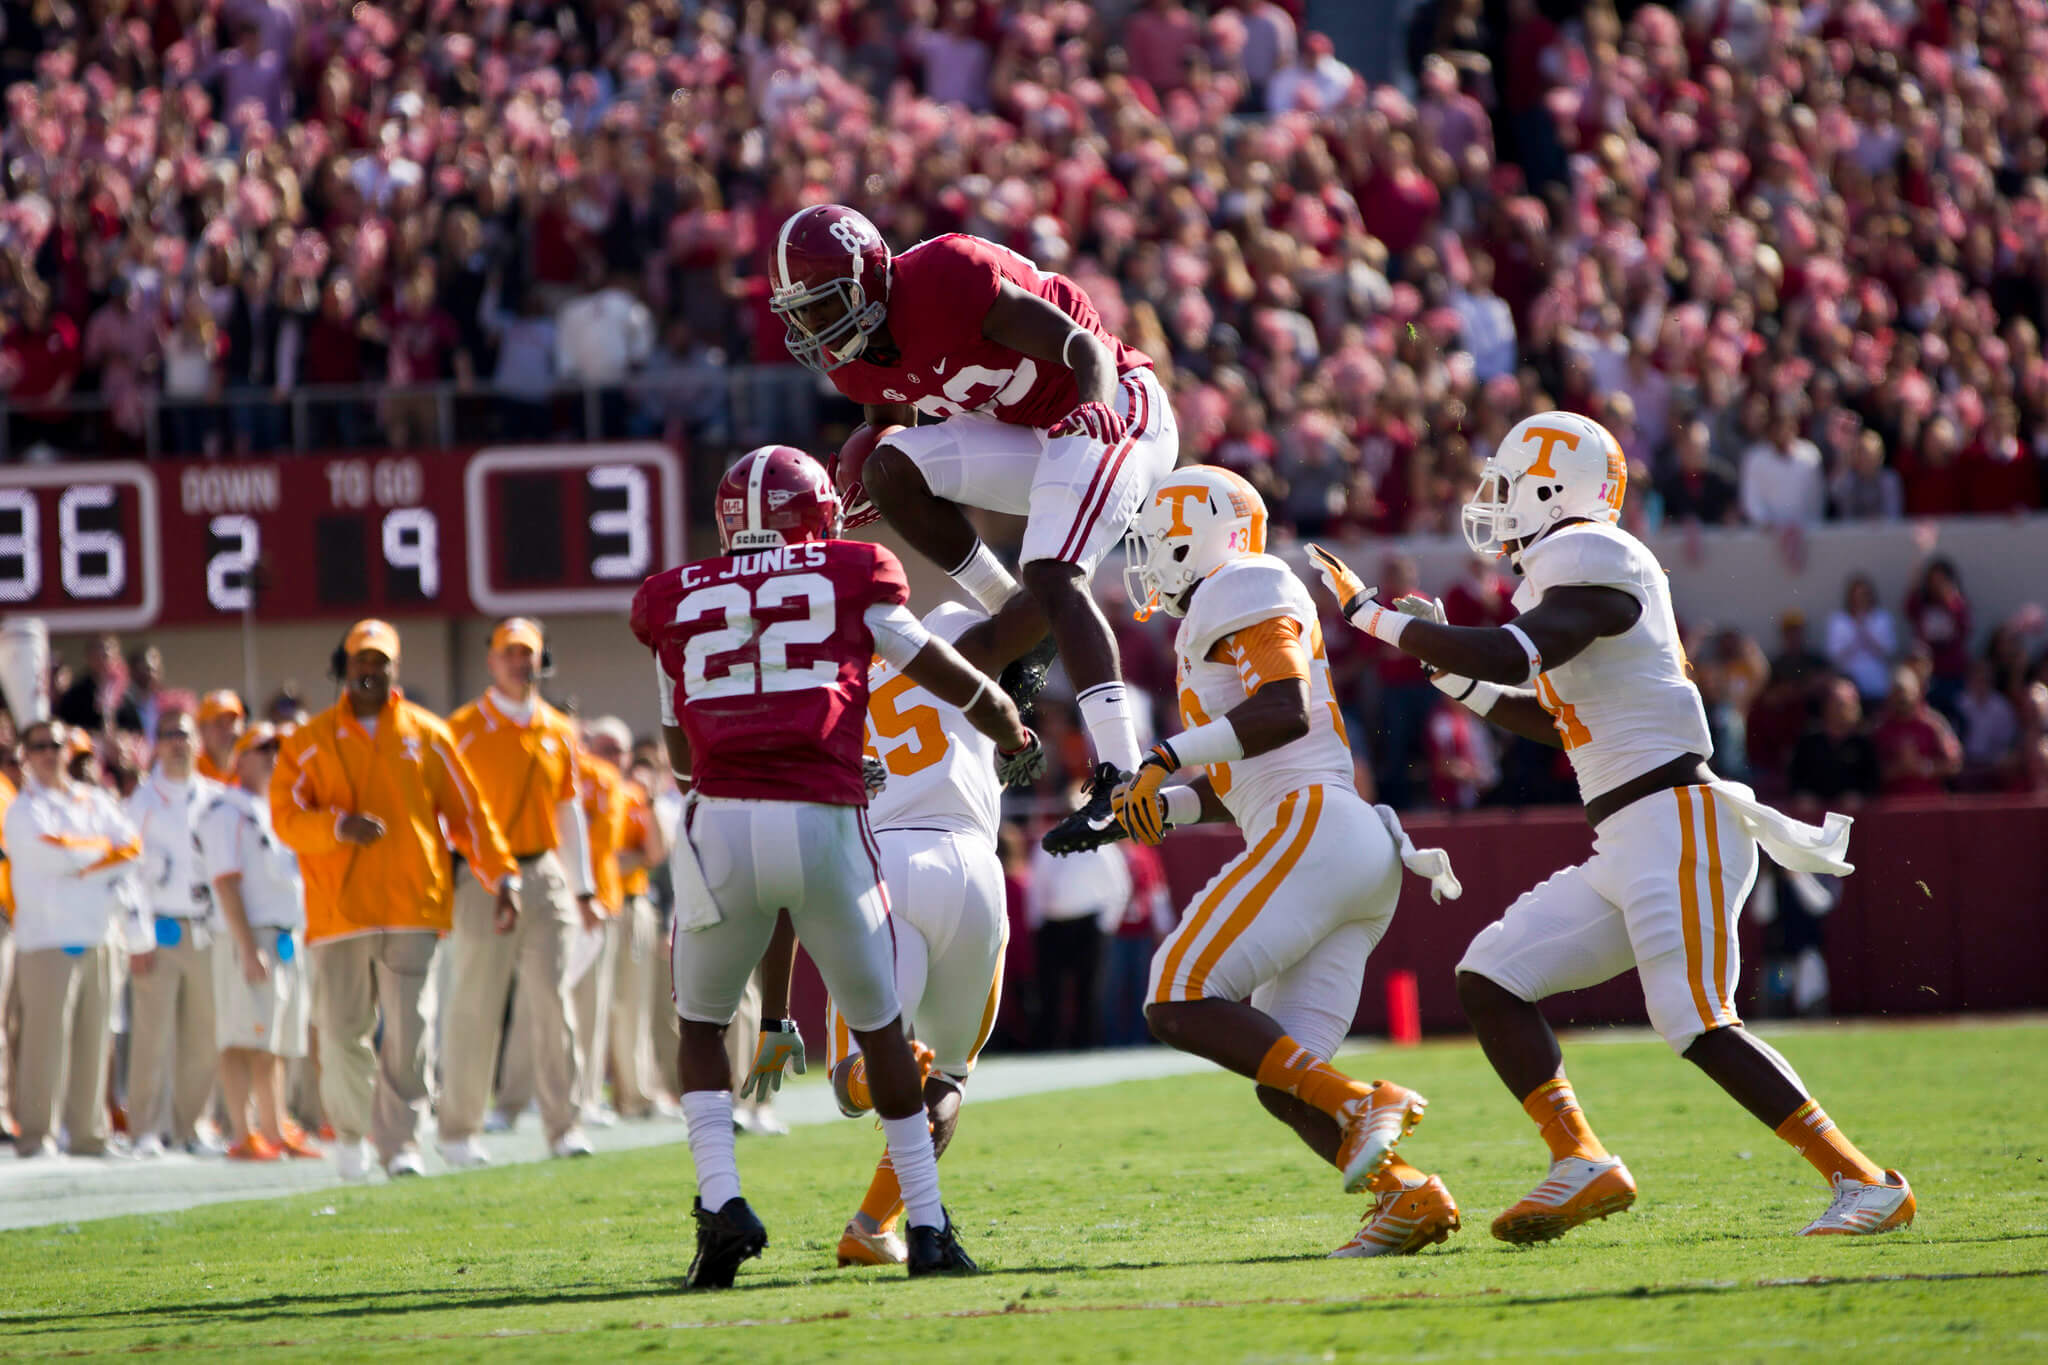 Tennessee vs Alabama Third Saturday in October rivalry